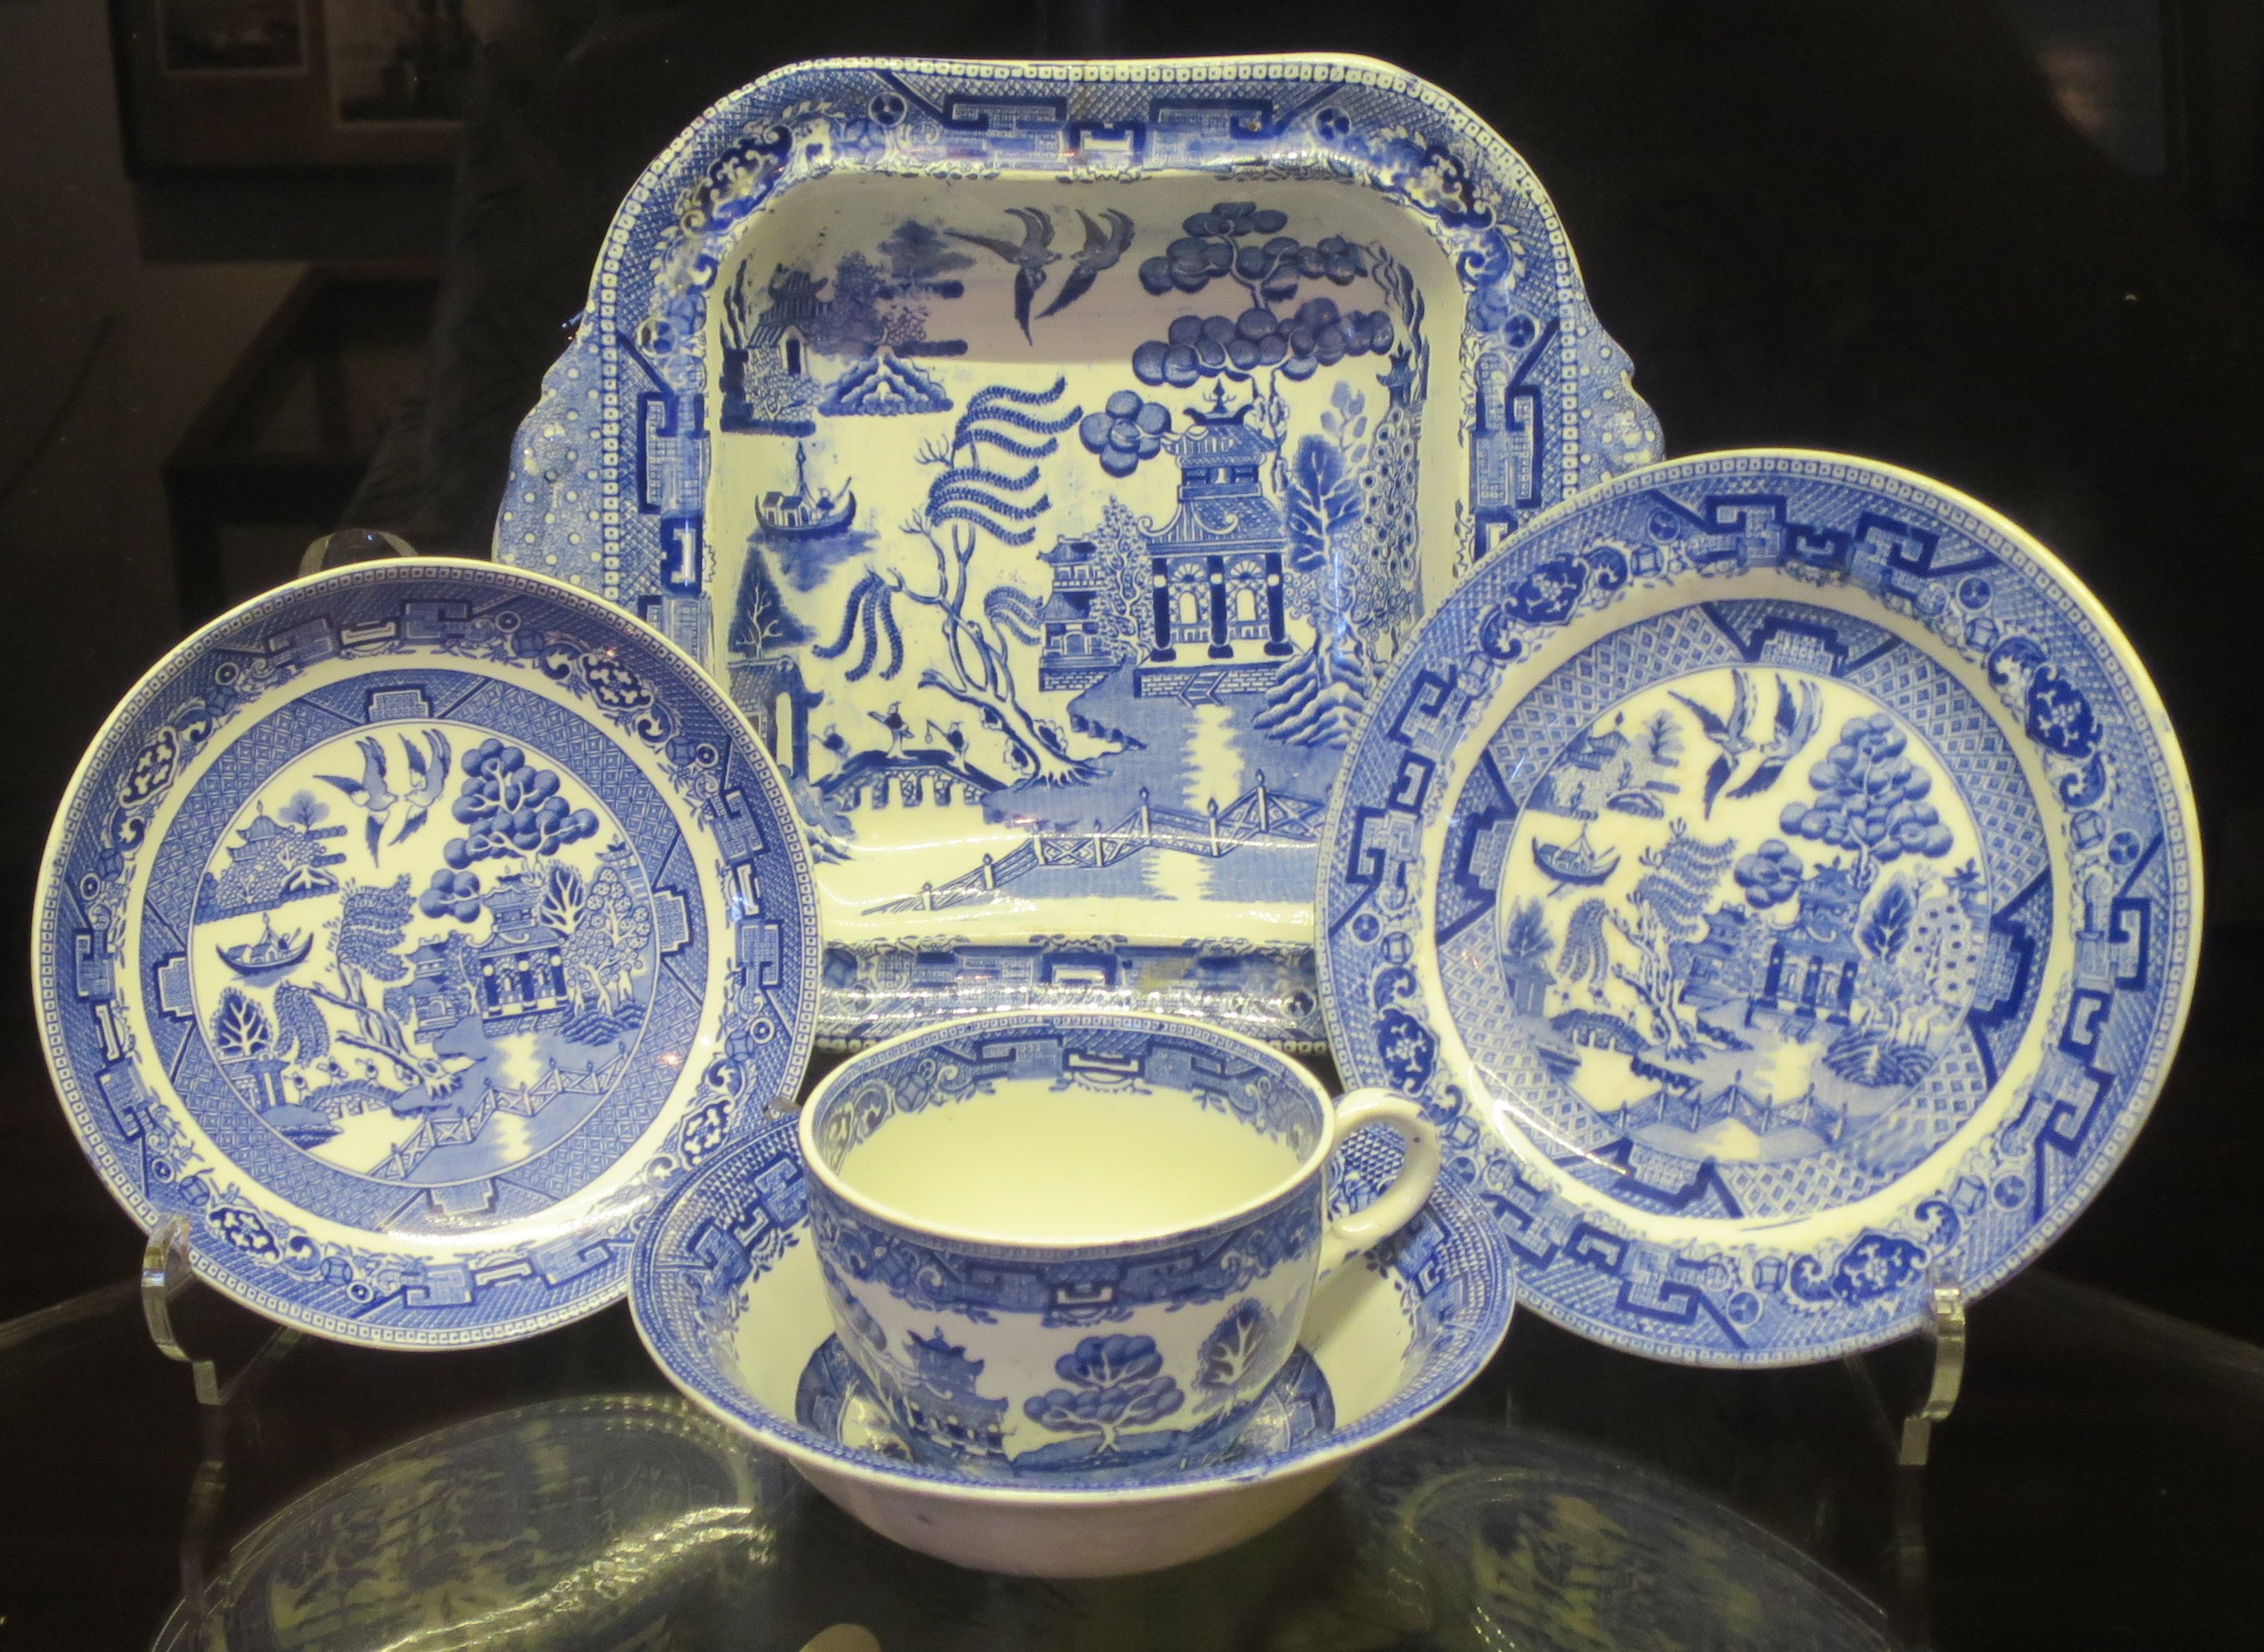 Willow pattern - Wikipedia